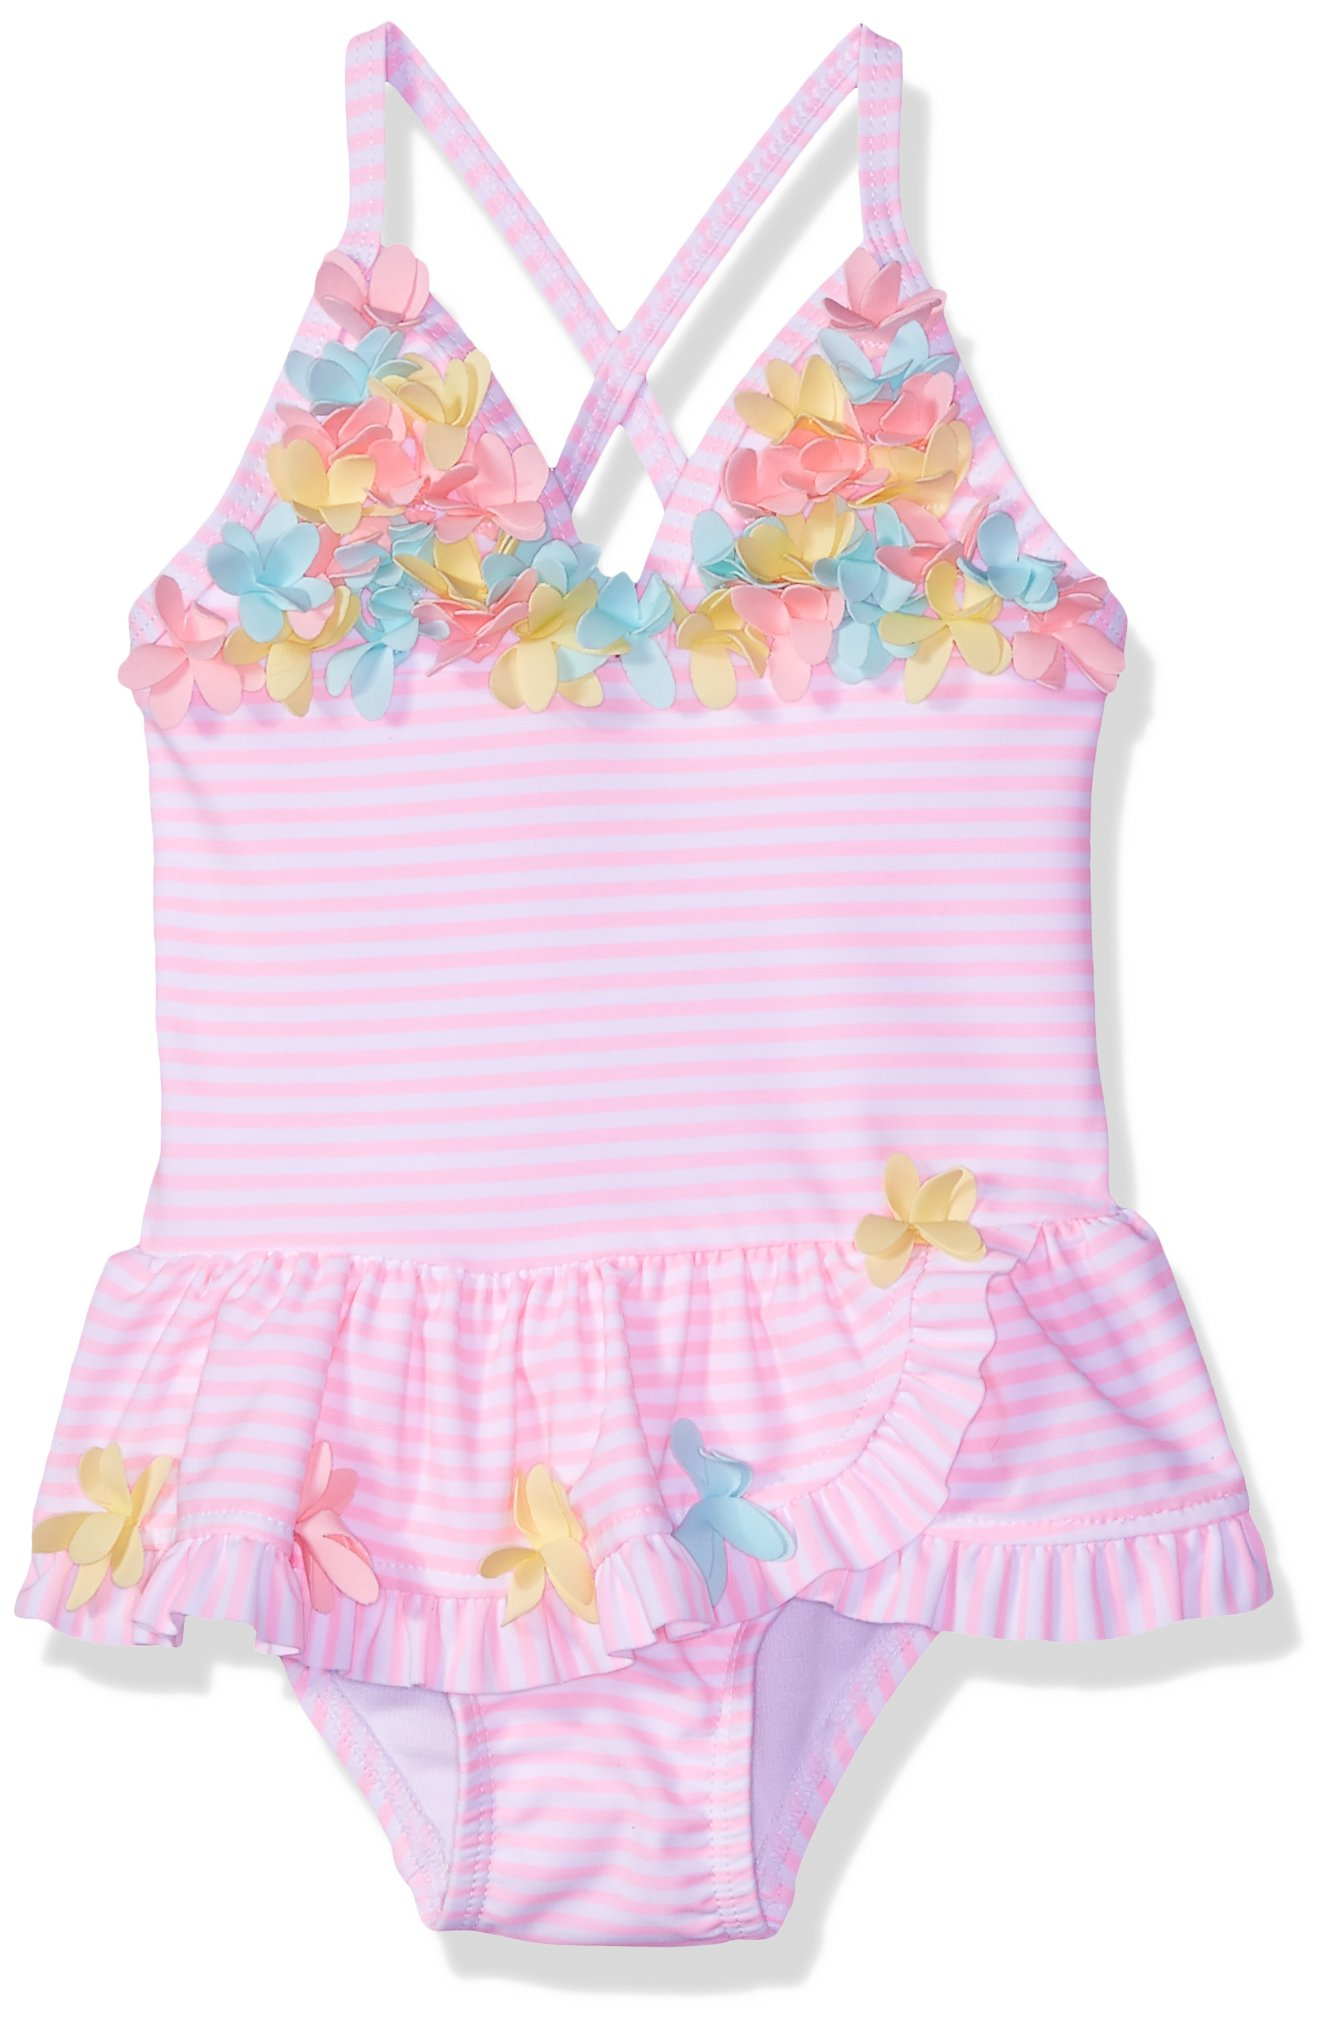 Little Me Kids' Baby and Toddler Girls UPF 50+ One Piece Swimsuit, 3D Multi Pink, 2T by Little Me